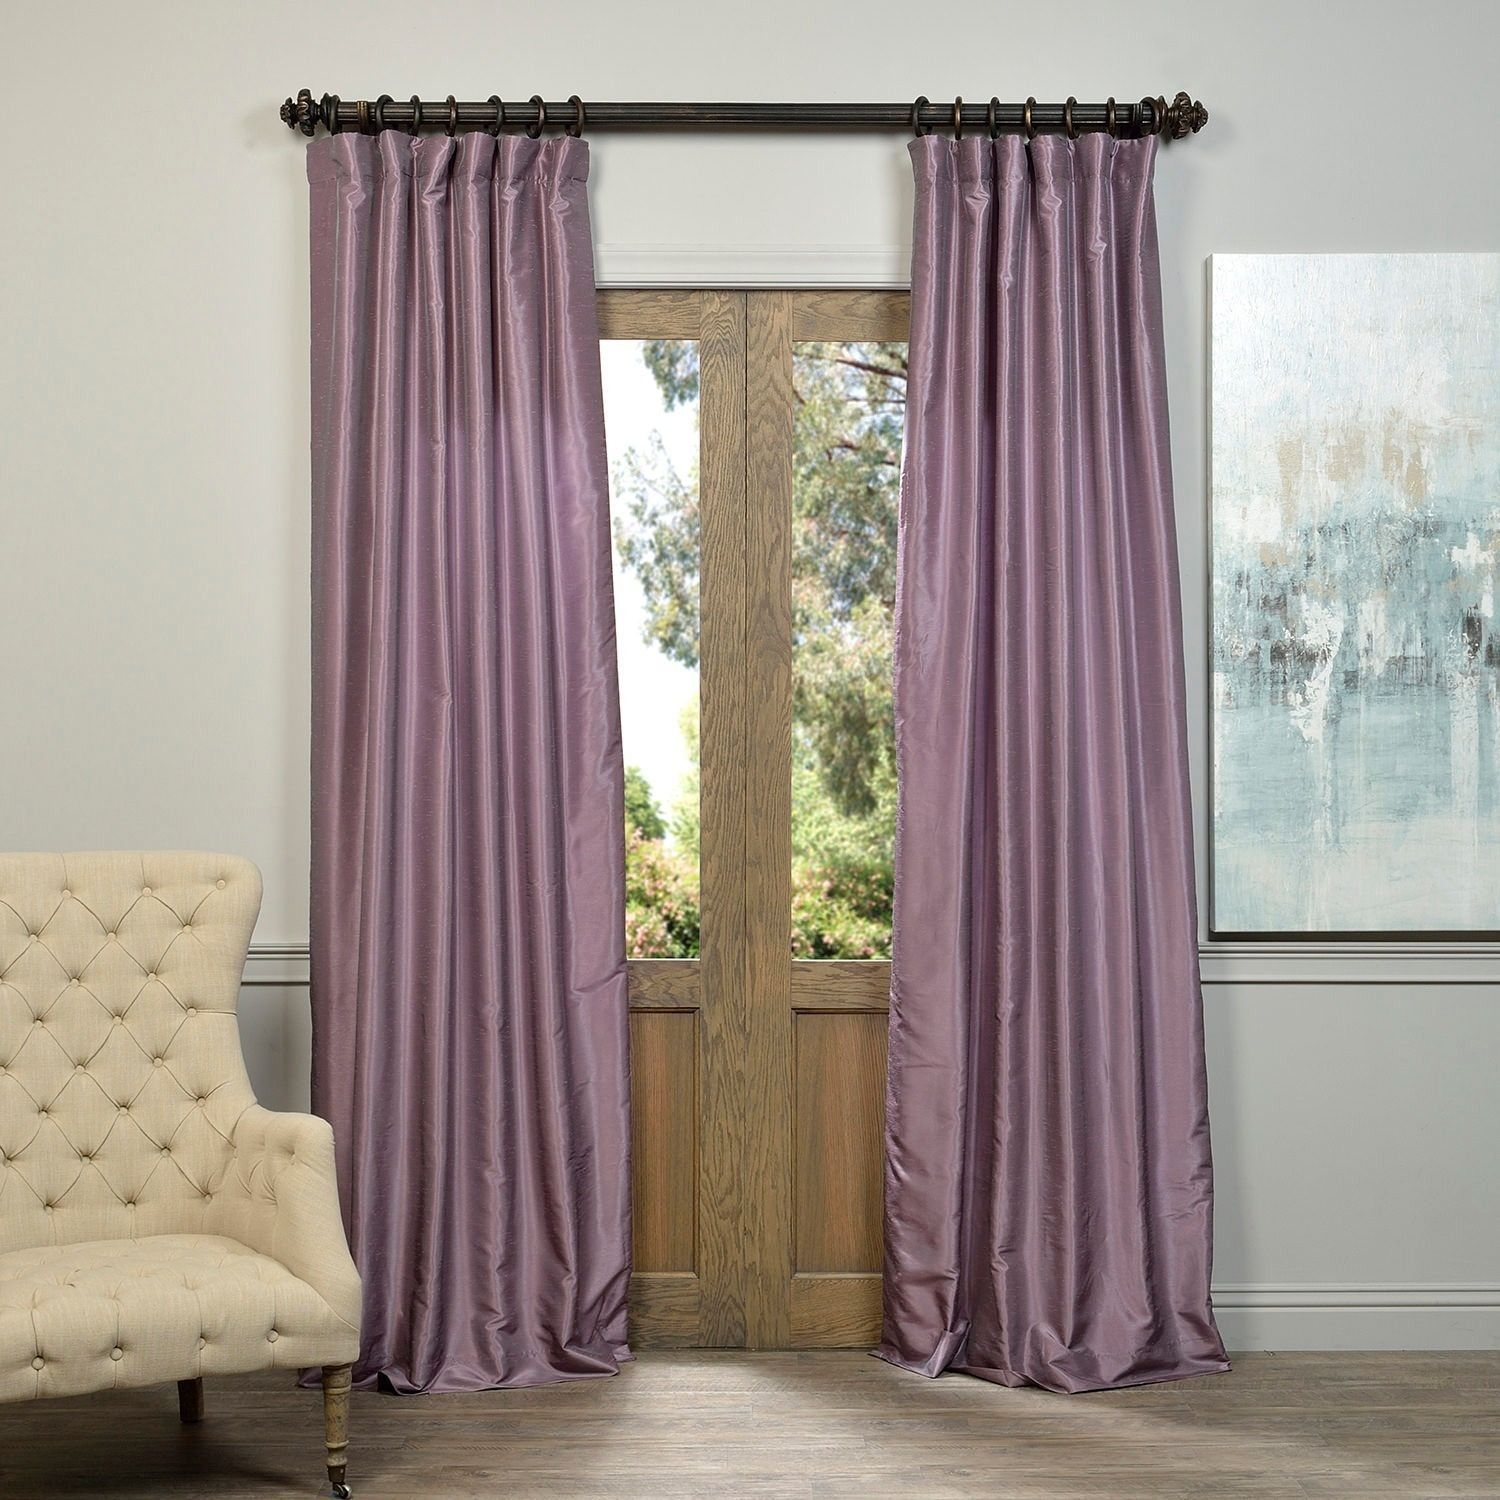 exclusive fabrics smoky plum vintage faux dupioni silk curtain panel 120 inch purple size 50 x 120 faux silk solid